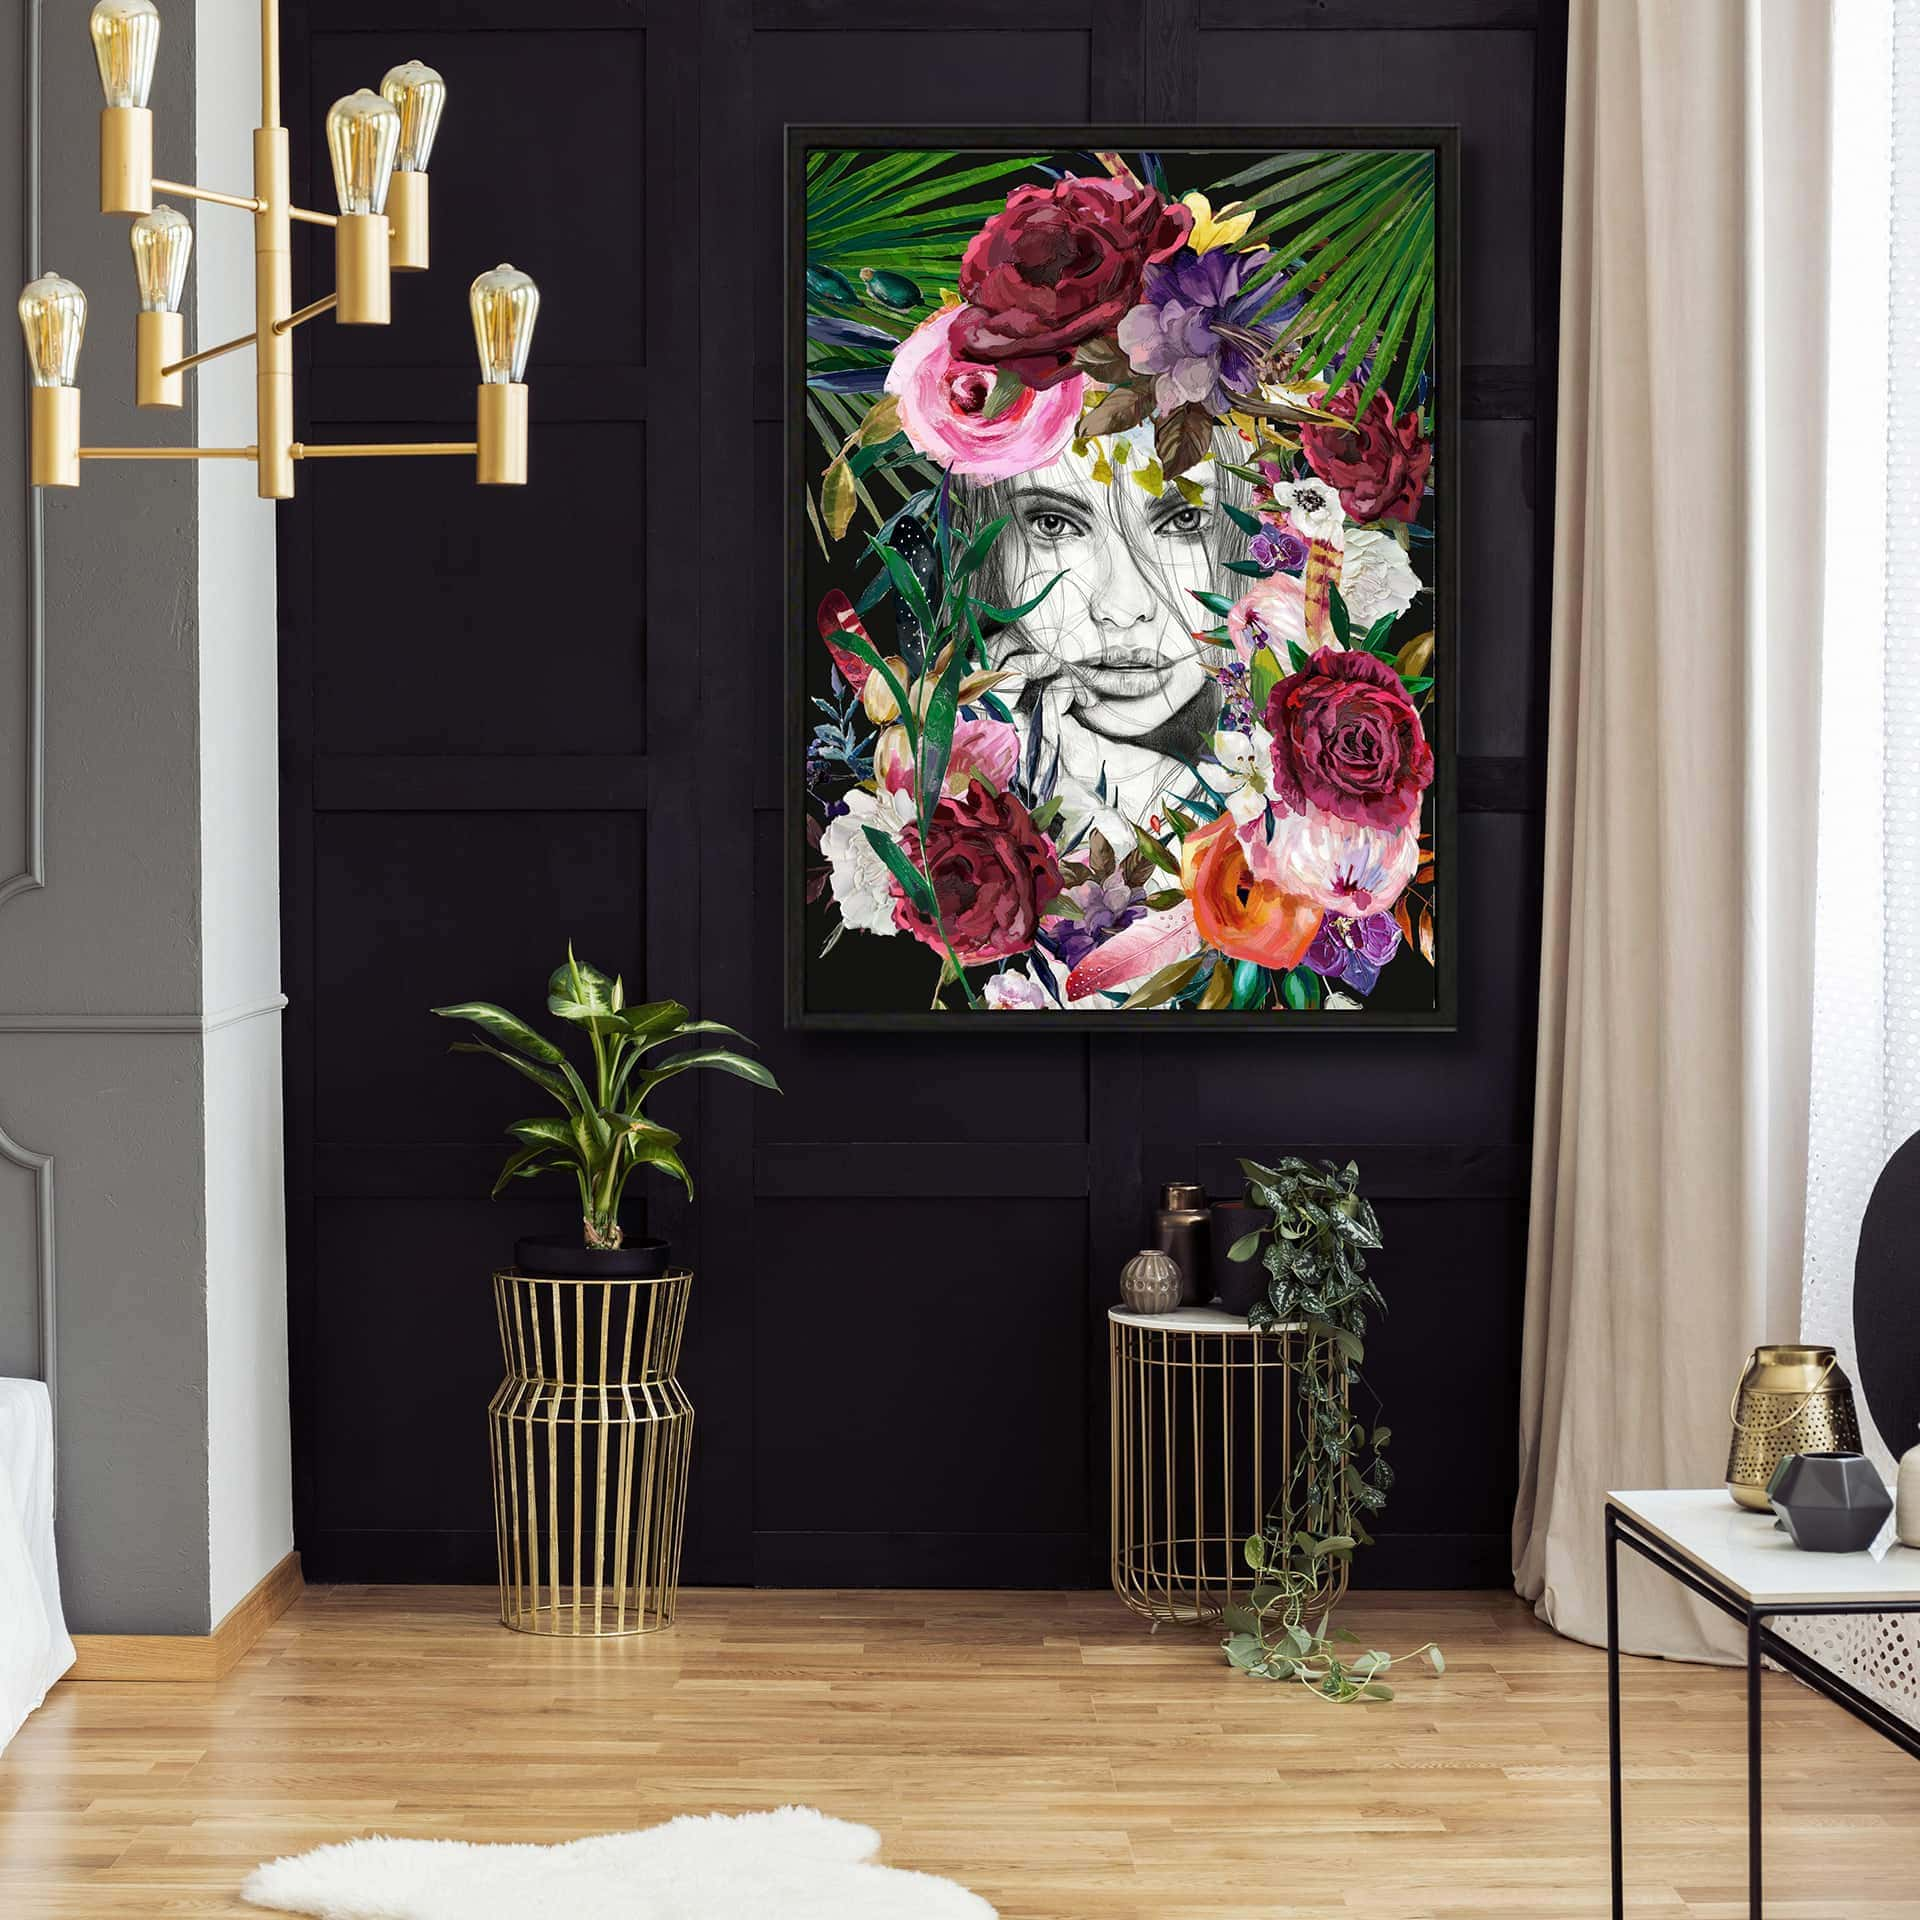 for the love of paris female face artwork black and gold poster above plants in bedroom interior with whit